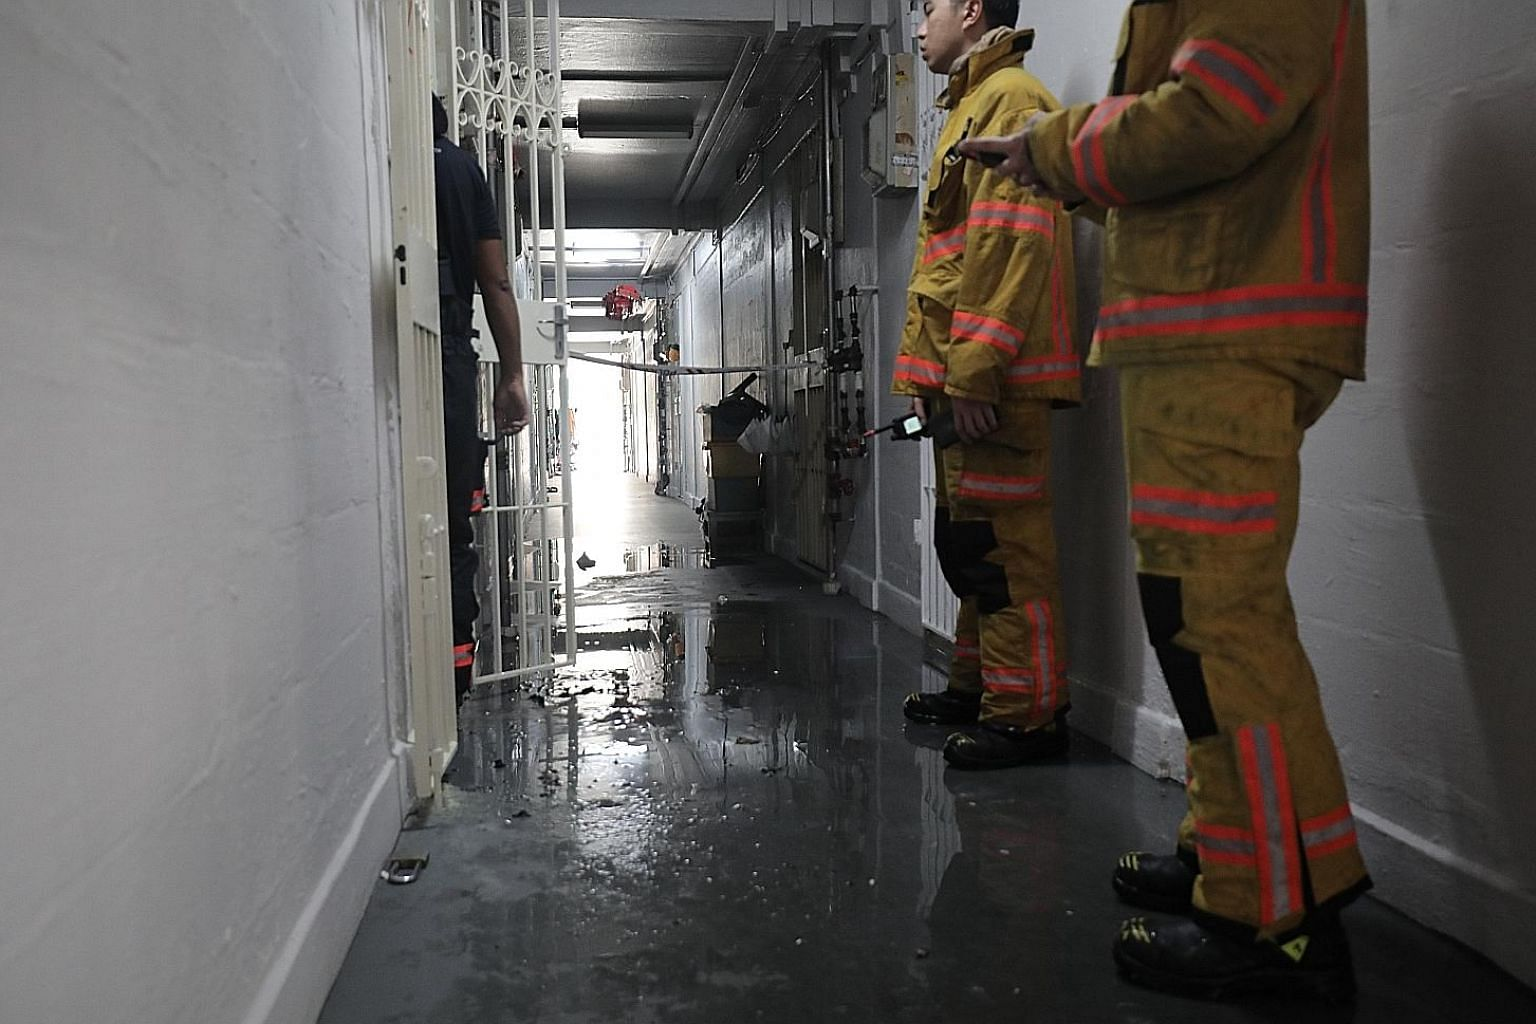 SCDF officers at the Ang Mo Kio flat yesterday. The man was found in the living room with burn injuries and taken to Tan Tock Seng Hospital, where he later died. PHOTO: LIANHE ZAOBAO